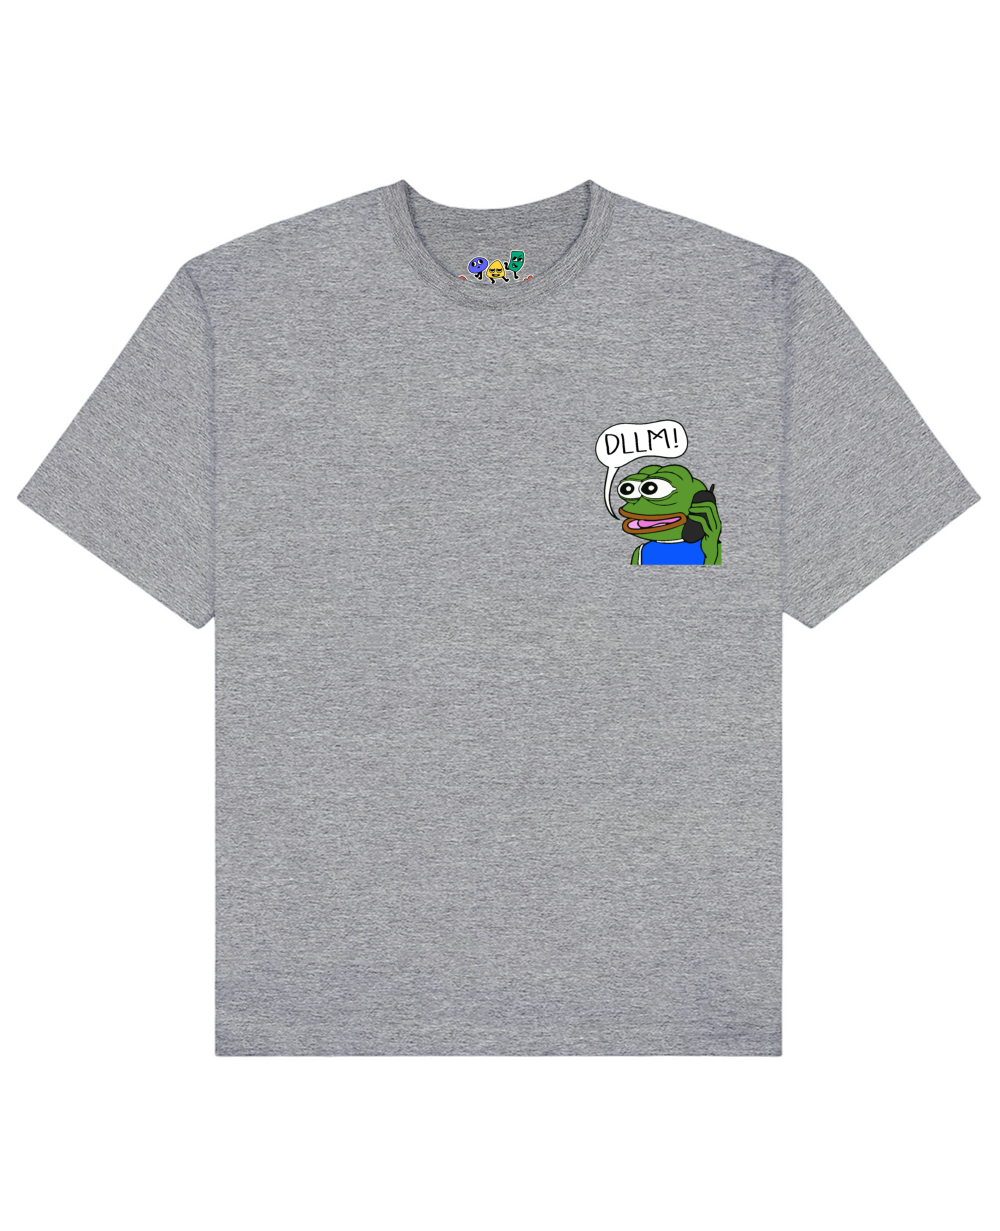 DLLM Pepe The Frog Print T-Shirt in Gray